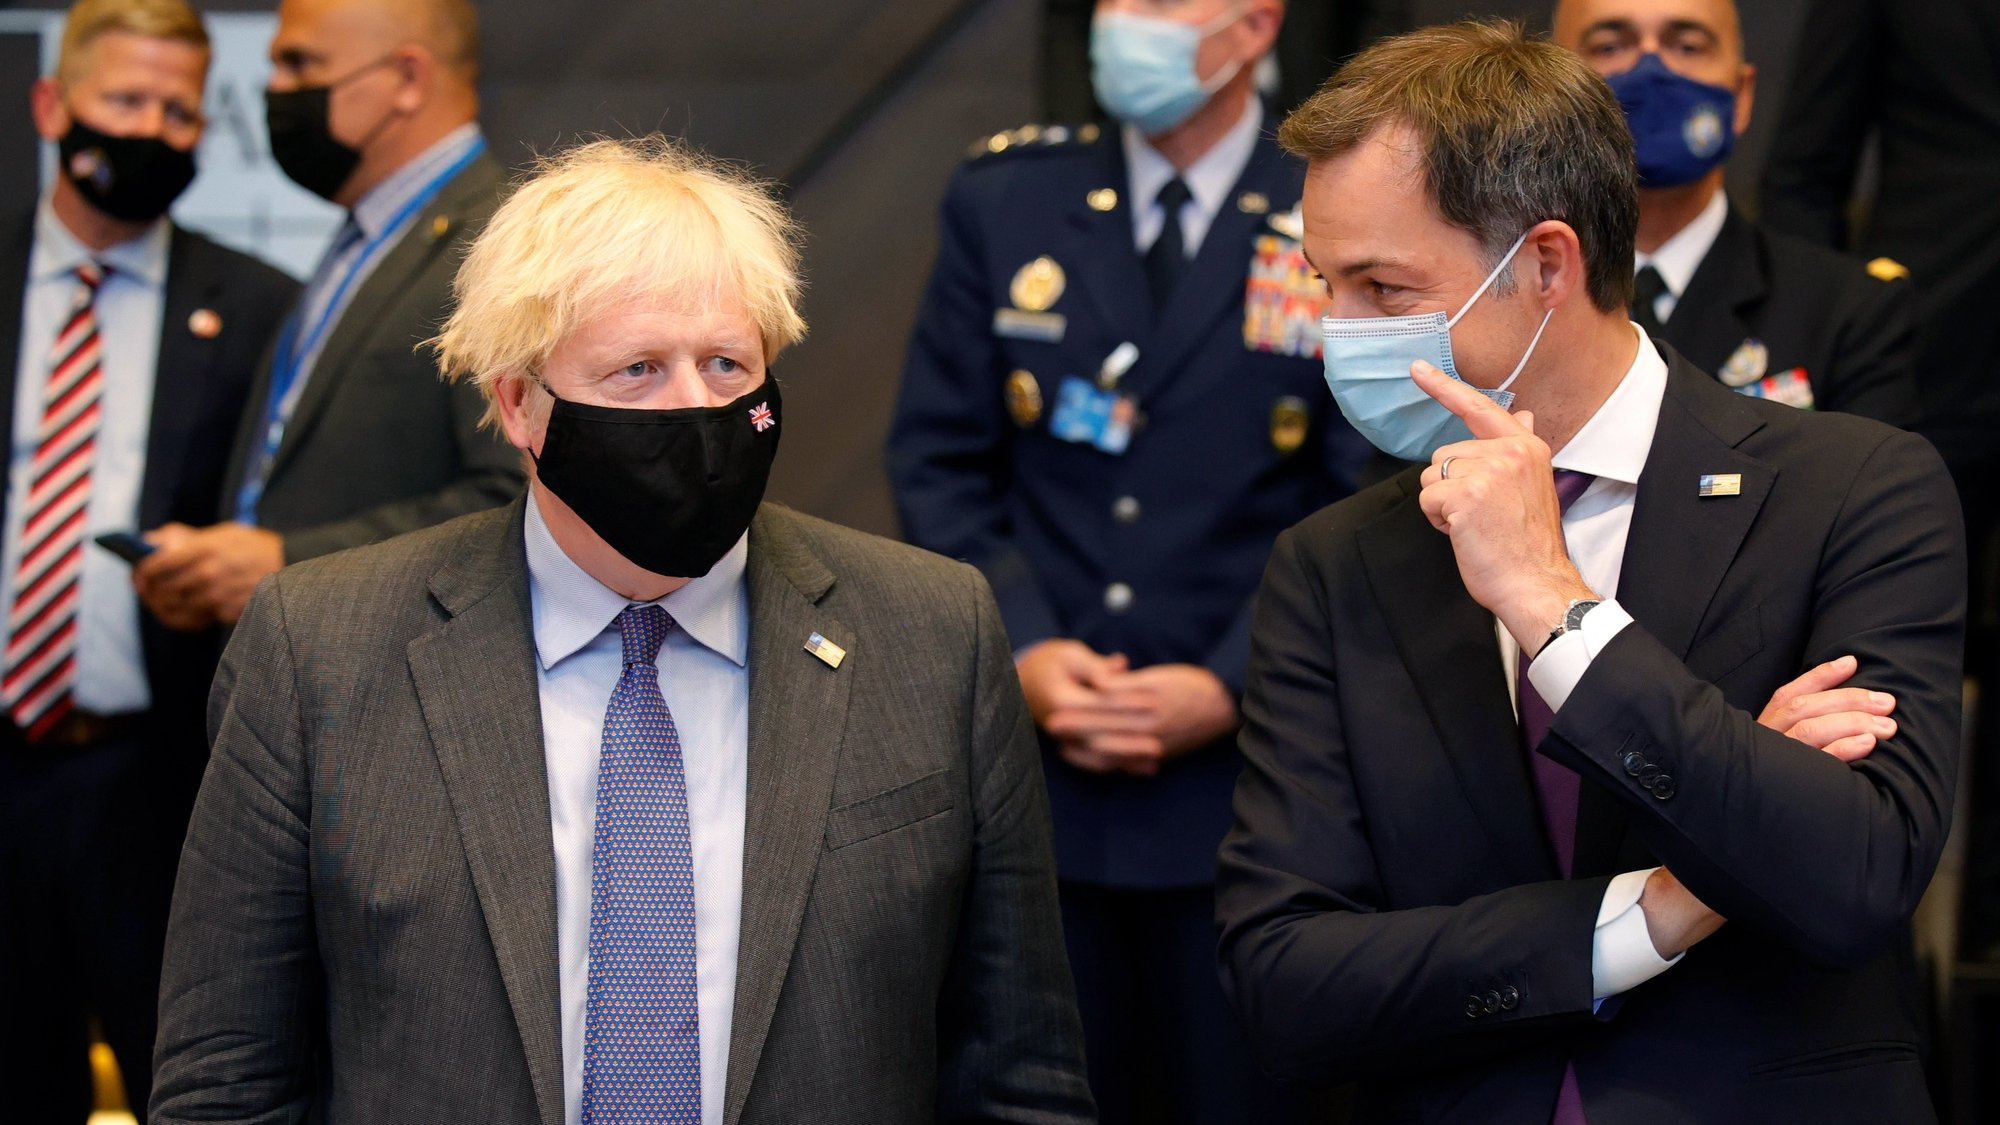 epa09270199 British Prime Minister Boris Johnson (L) speaks with Belgium's Prime Minister Alexander De Croo during a plenary session at a NATO summit in Brussels, Belgium, 14 June 2021. The 30-nation alliance hopes to reaffirm its unity and discuss increasingly tense relations with China and Russia, as the organization pulls its troops out after 18 years in Afghanistan.  EPA/OLIVIER MATTHYS / POOL